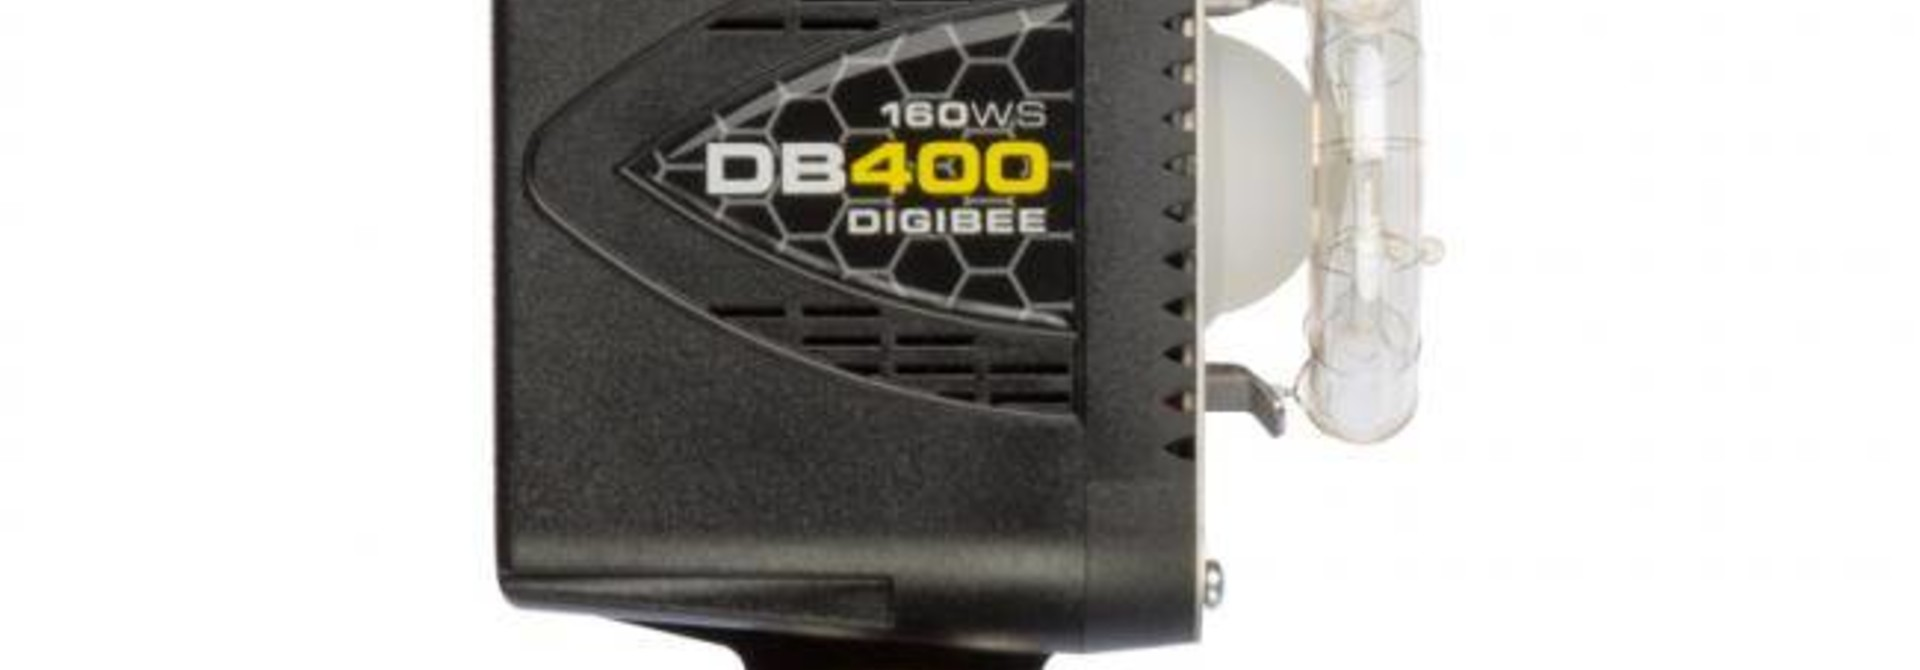 DigiBee Flash Unit - DB400